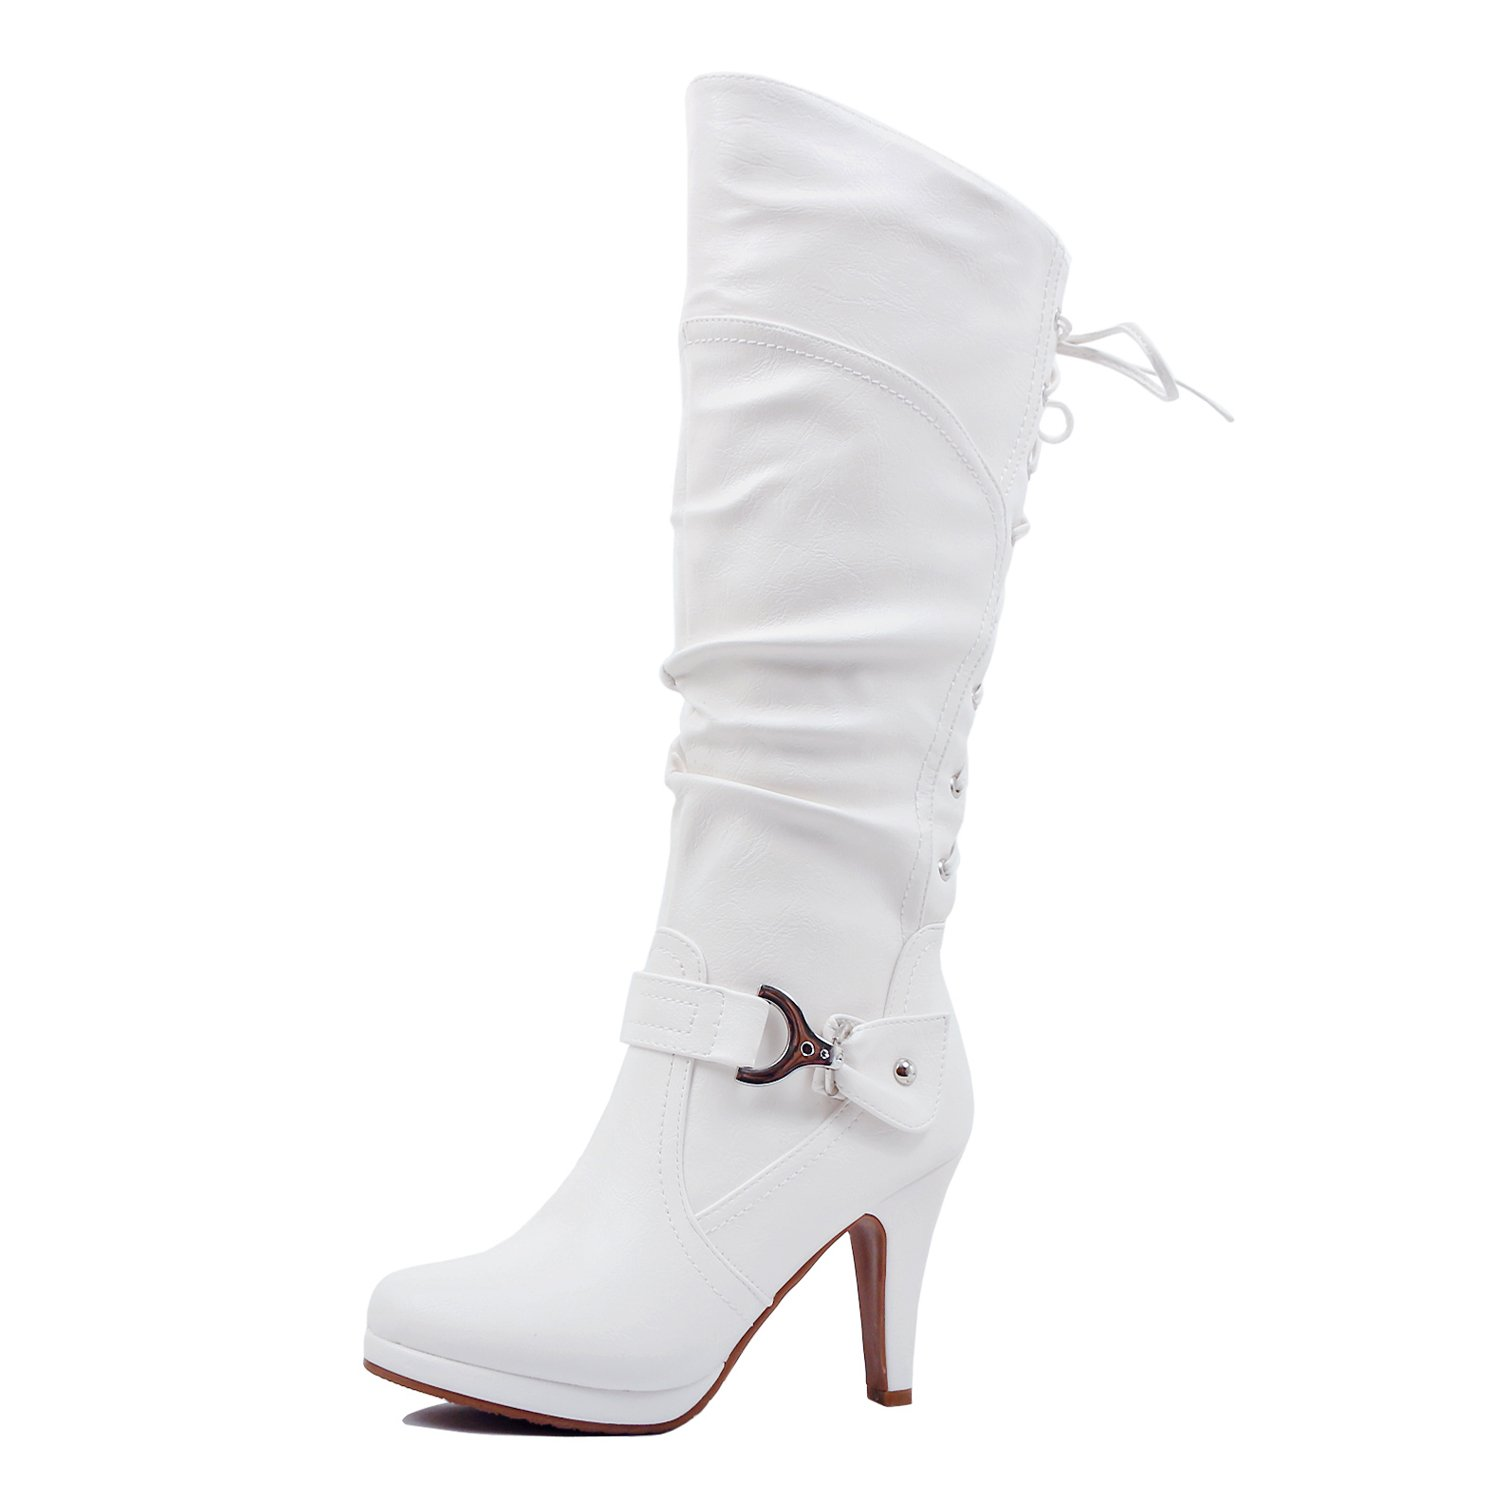 Guilty Heart   Womens Sexy Fitted Knee High Stretchy High Heel Riding Boots (7.5 B(M) US, Whitev1 Pu)